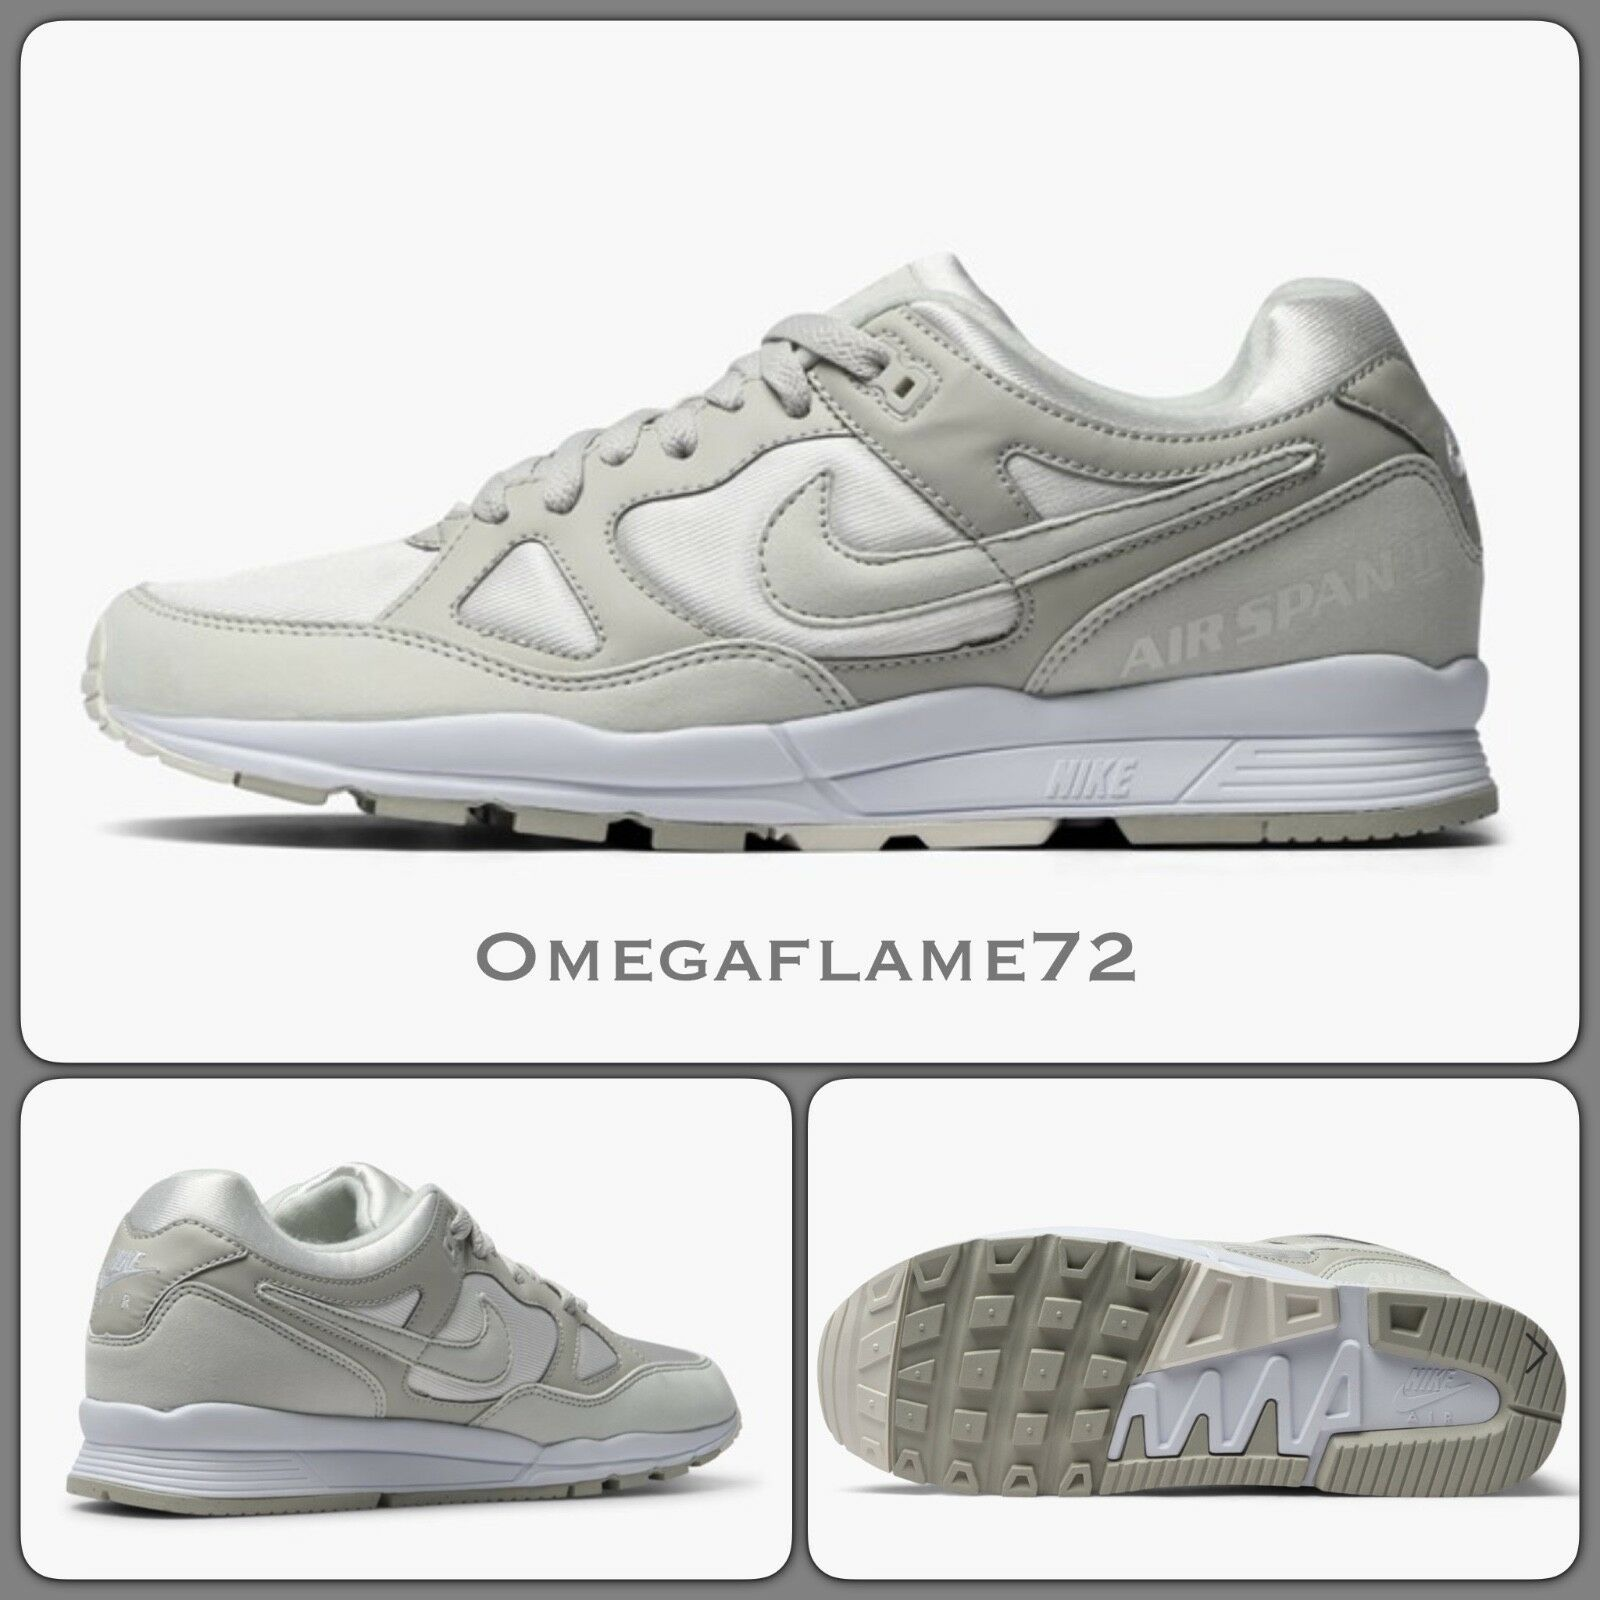 Nike Air Span II 2 EU OG, Sz UK 12, EU 2 47.5, US 13 AH8047-100, SUMMIT WEISS, GREY c77b34